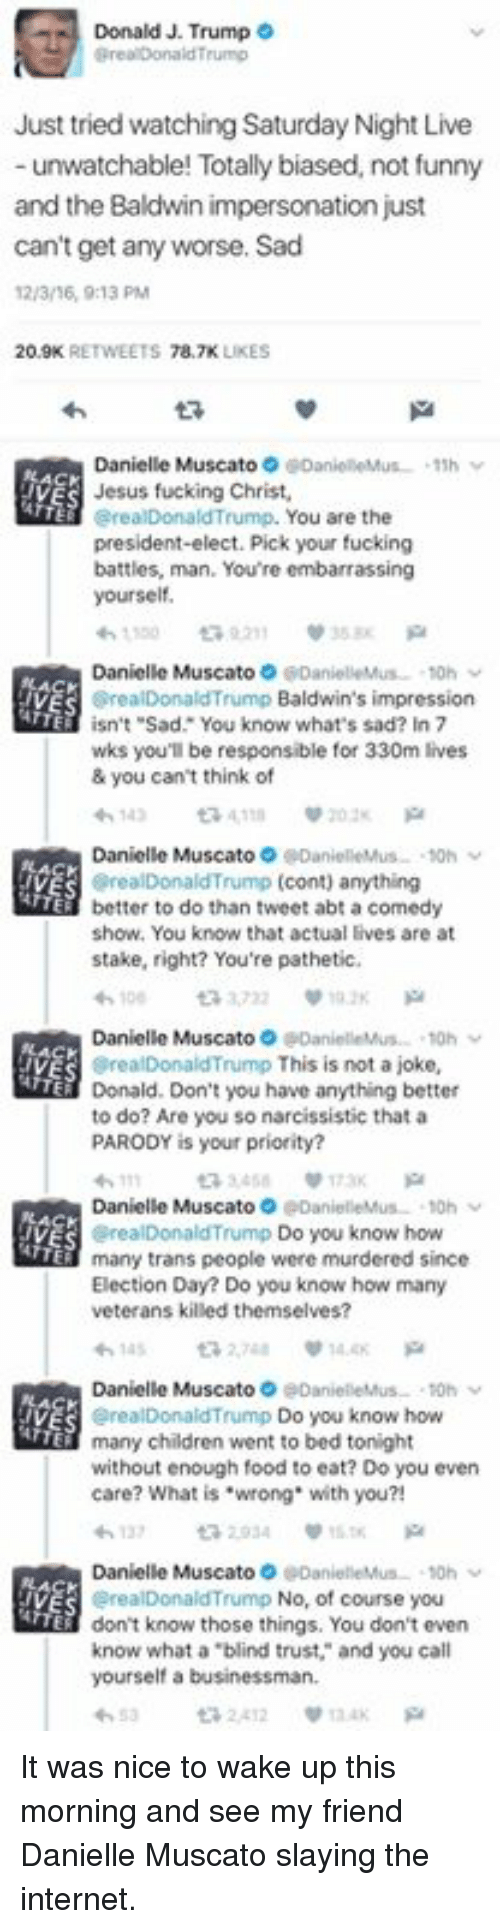 "Memes, Saturday Night Live, and Narcissist: Donald J. Trump  O  Just tried watching Saturday Night Live  unwatchable! Totally biased, not funny  and the Baldwin impersonation just  can't get any worse. Sad  12/3/6, 0:13 PM  20.9K  78.7K  LIKES  Danielle Muscato  IVES Jesus fucking Christ,  You are the  erealDonald Trump.  president-elect. Pick your fucking  battles, man. You're embarrassing  yourself.  Danielle Muscato  Baldwin's impression  isn't ""Sad. You know what's sad? In 7  wks you'll be responsible for 330m lives  & you can't think of  Danielle Muscato  realDonald Trump cont) anything  better to do than tweet abt a comedy  show. You know that actual lives are at  stake, right? You're pathetic,  Danielle Muscato  realDonald Trump  This is not a joke,  Donald. Don't you have anything better  to do? Are you so narcissistic that a  PARODY is your priority?  Danielle  Trump  TTE  Do you know how  many trans people were murdered since  Election Day? Do you know how many  veterans killed themselves?  Danielle Muscato  alDonald Trump Do you know how  many children went to bed tonight  without enough food to eat? Do you even  care? What is ""wrong with you?!  Danielle Muscato  alDonald Trump No, of course you  don't know those things. You don't even  know what a blind trust, and you call  yourself a businessman.  2412 It was nice to wake up this morning and see my friend Danielle Muscato slaying the internet."